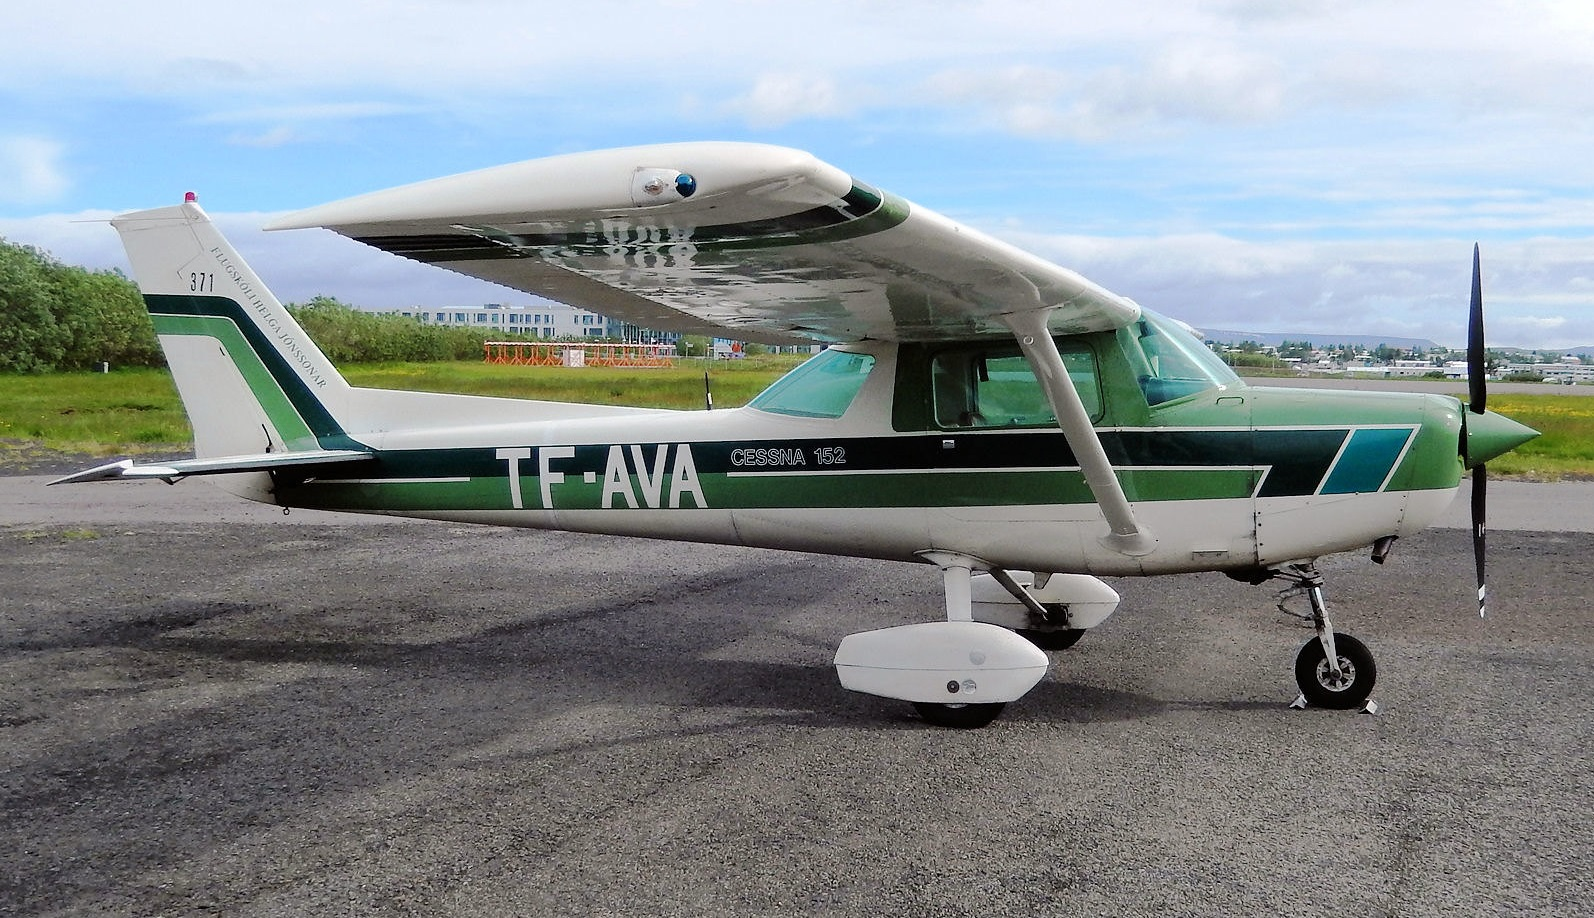 Reykjavik Flight Academy Cessna 152 reg. TF-AVA // Source: Trevor Read (flickr.com)